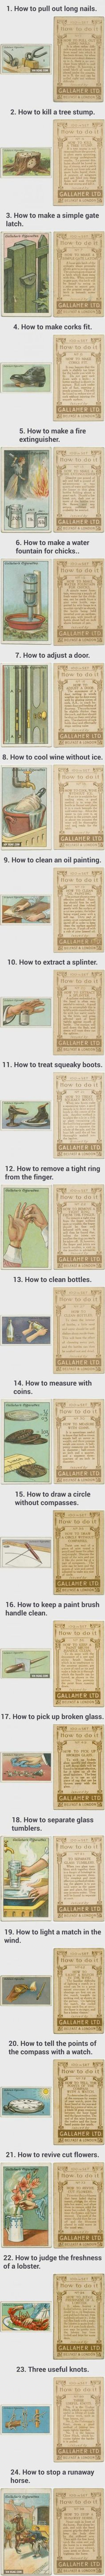 24 Life Hacks From 100 Years Ago That Are Still Useful In Today's Society